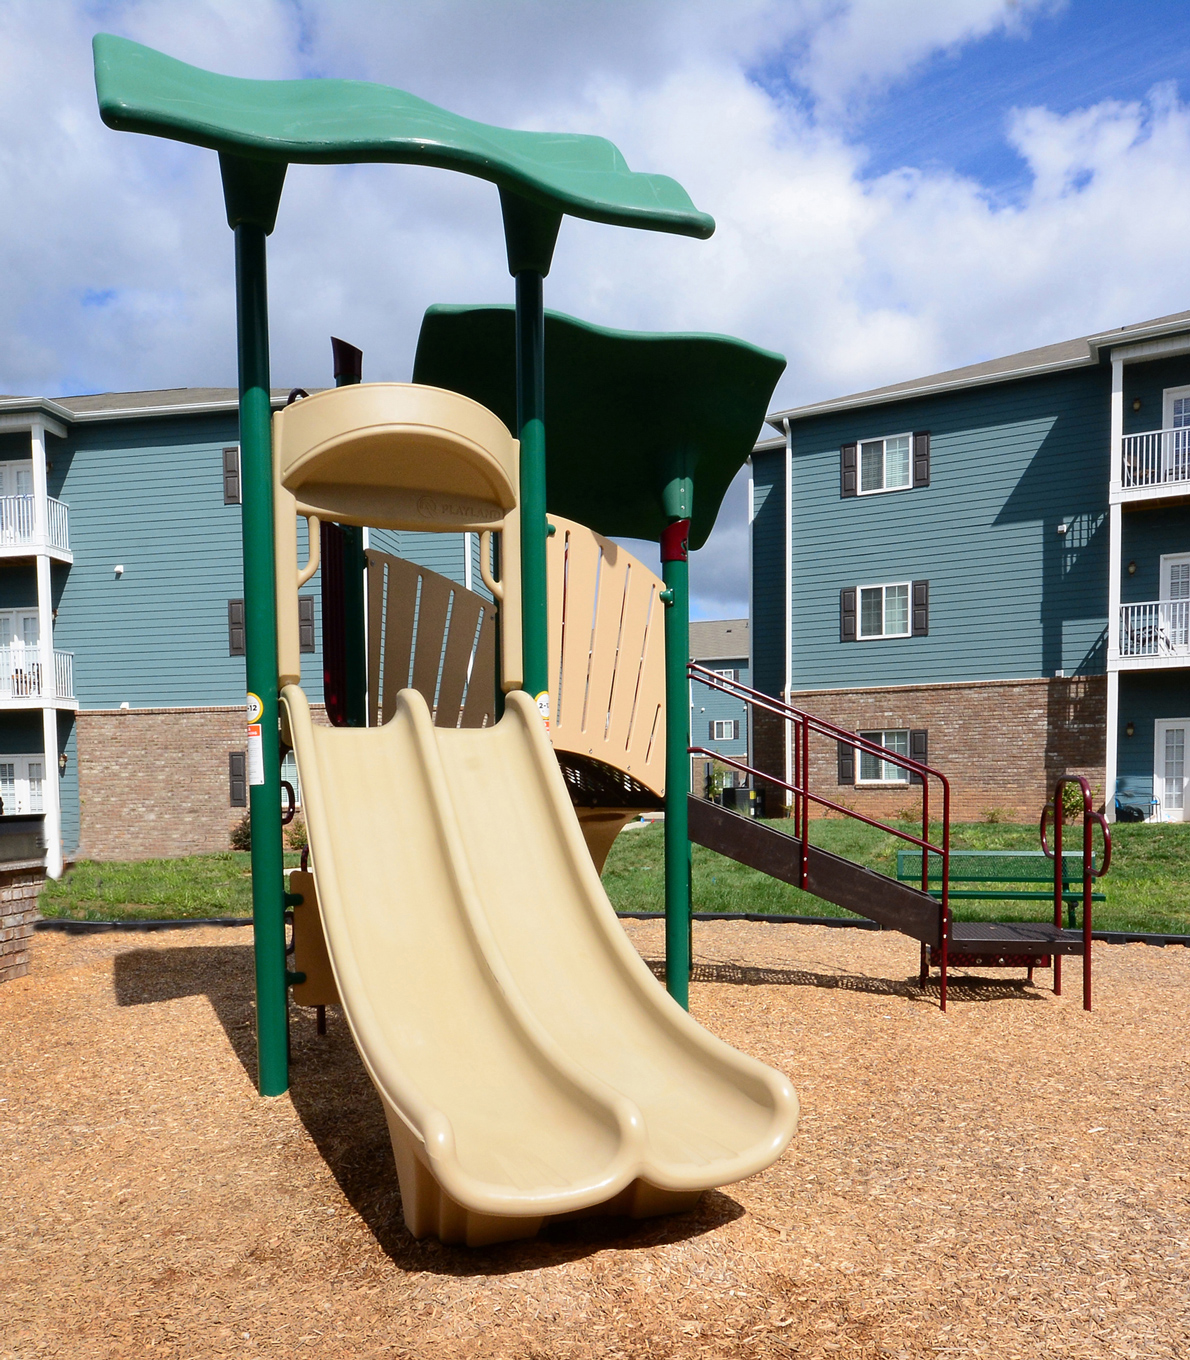 Ardmore-Howell-Road-Apartments-Greenville-Playground